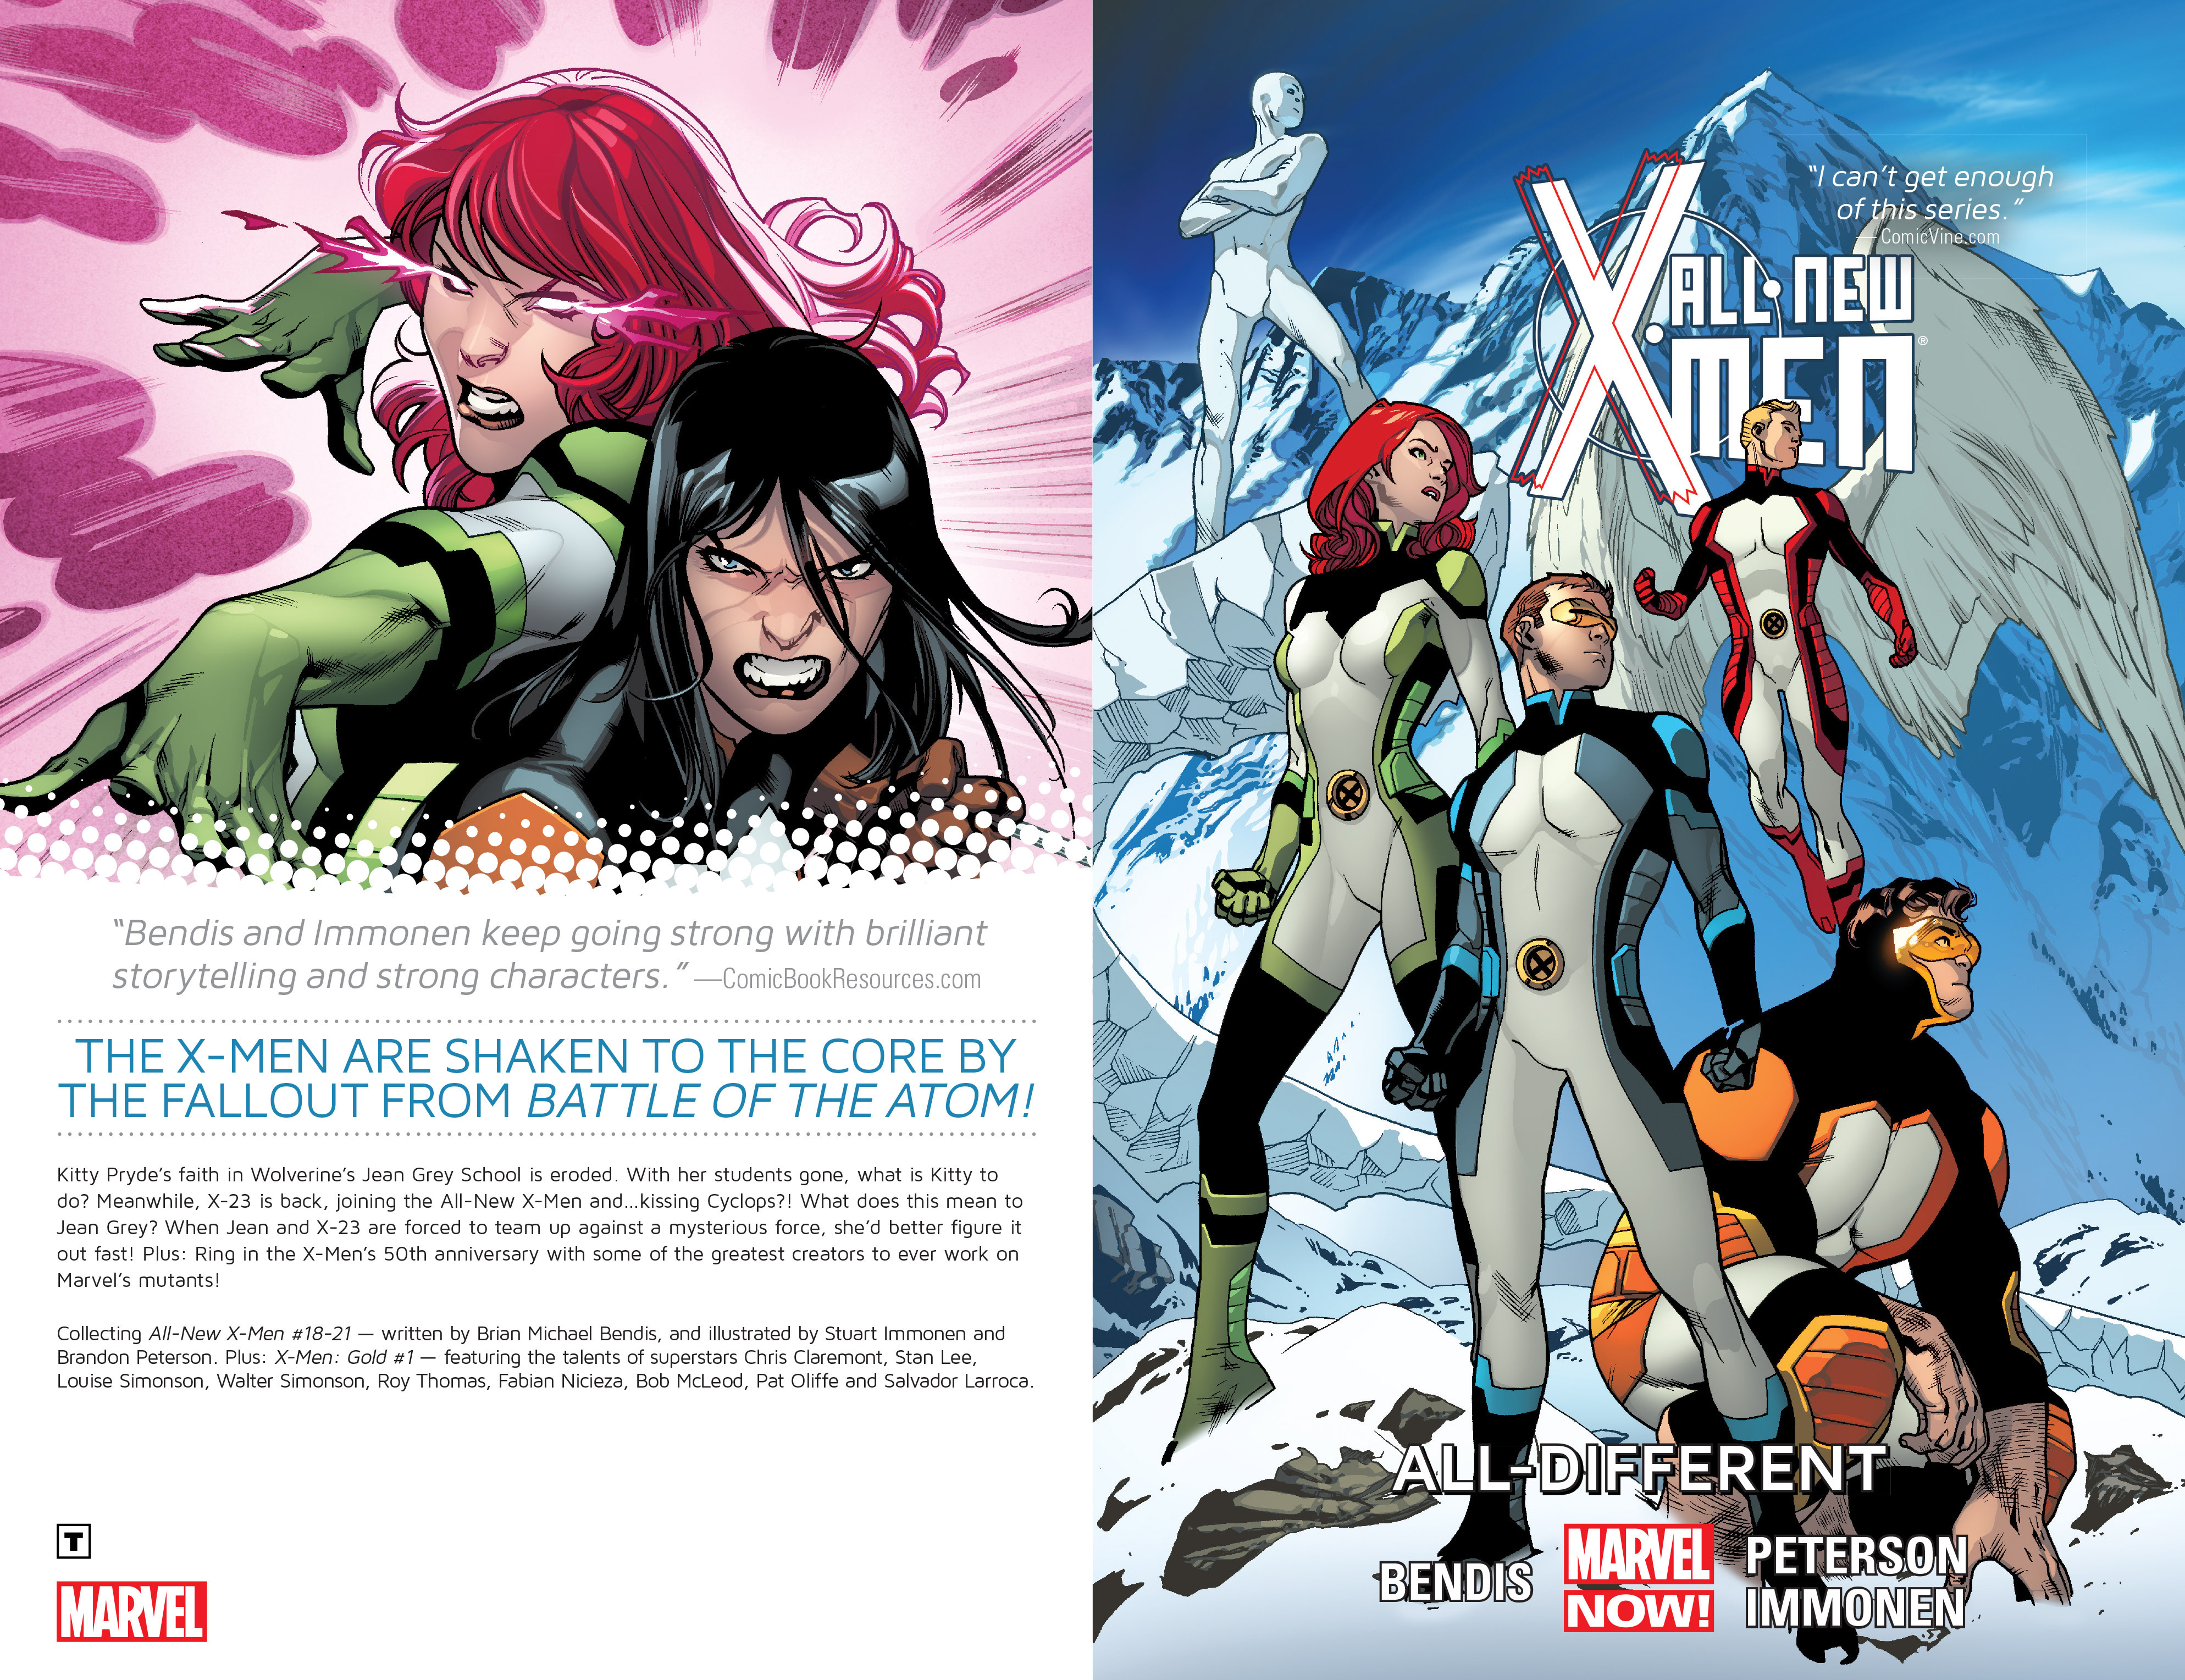 Read online All-New X-Men (2013) comic -  Issue # _Special - All-Different - 2